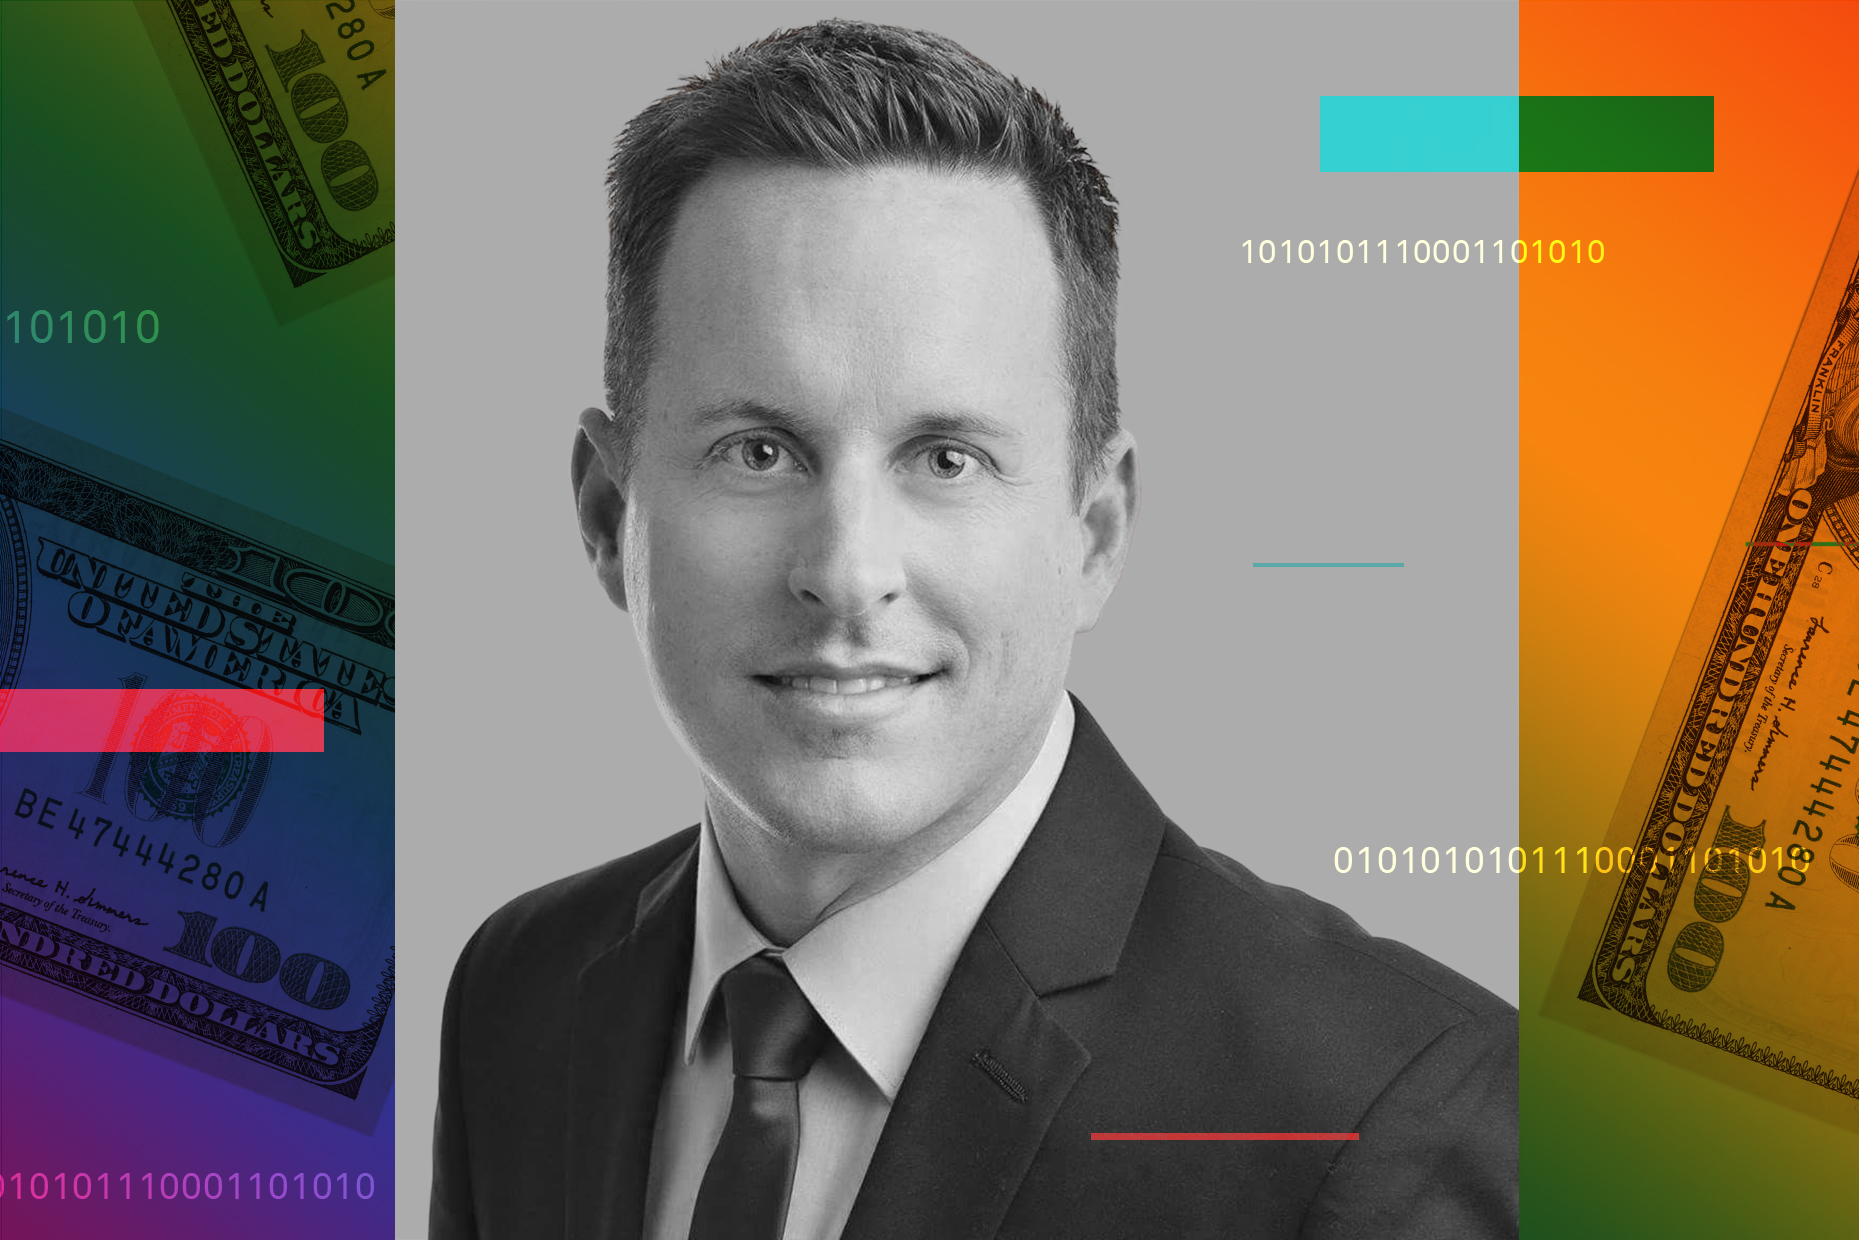 Photograph of Thomas Nitzsche over a rainbow colored background and hundred dollar bills